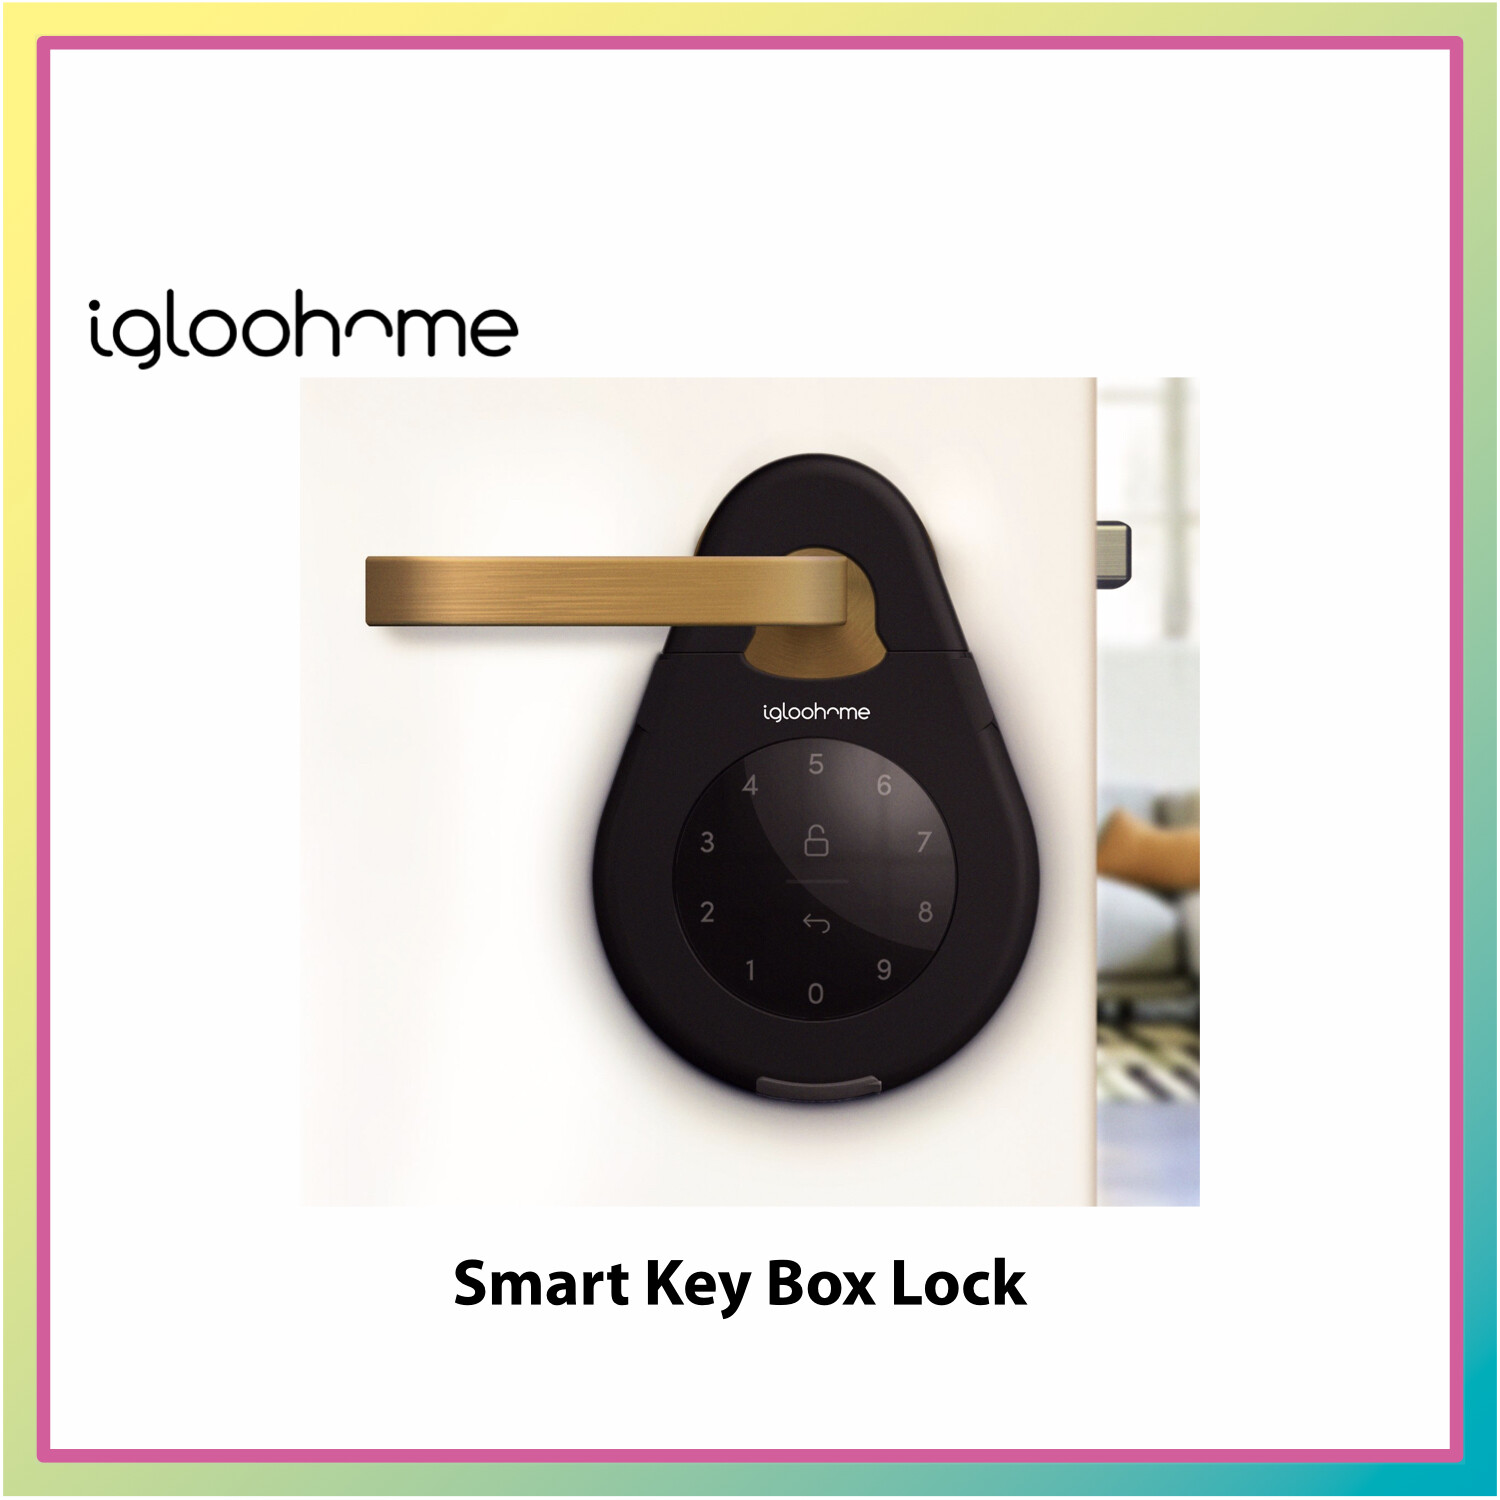 Igloohome Smart Key Box Lock 3 ( Bluetooth Apps